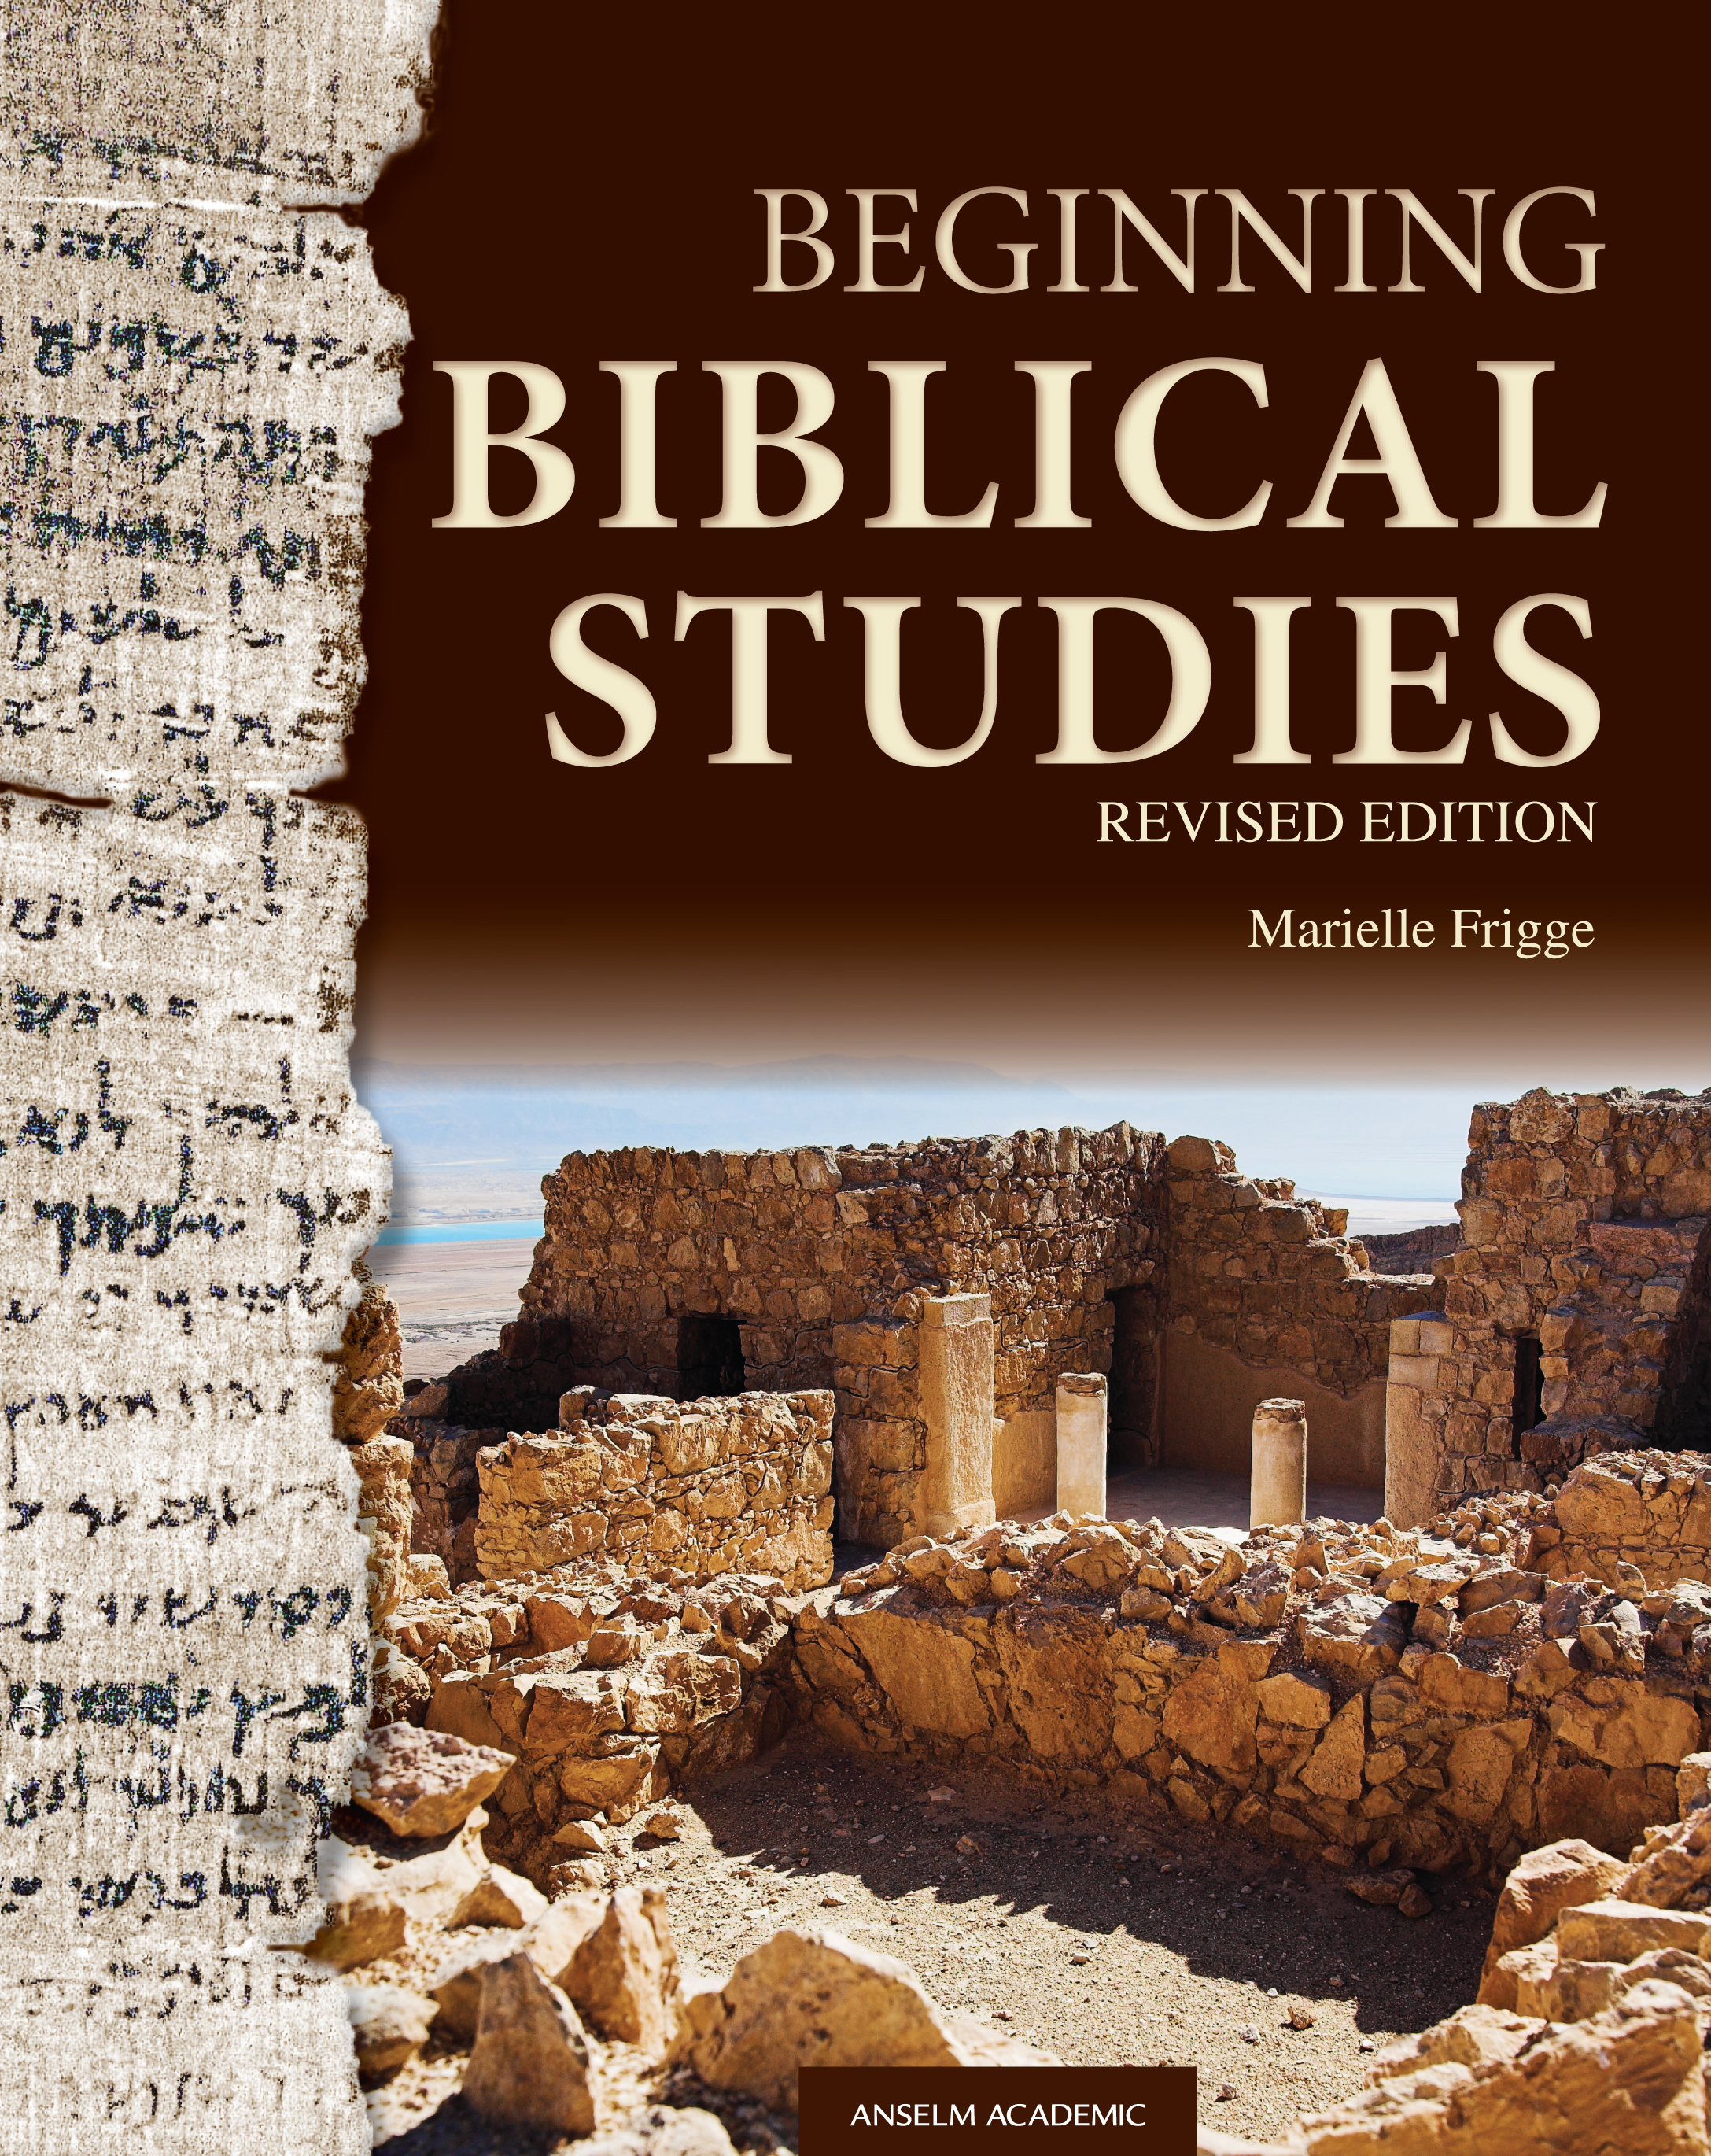 Beginning Biblical Studies - Revised Edition